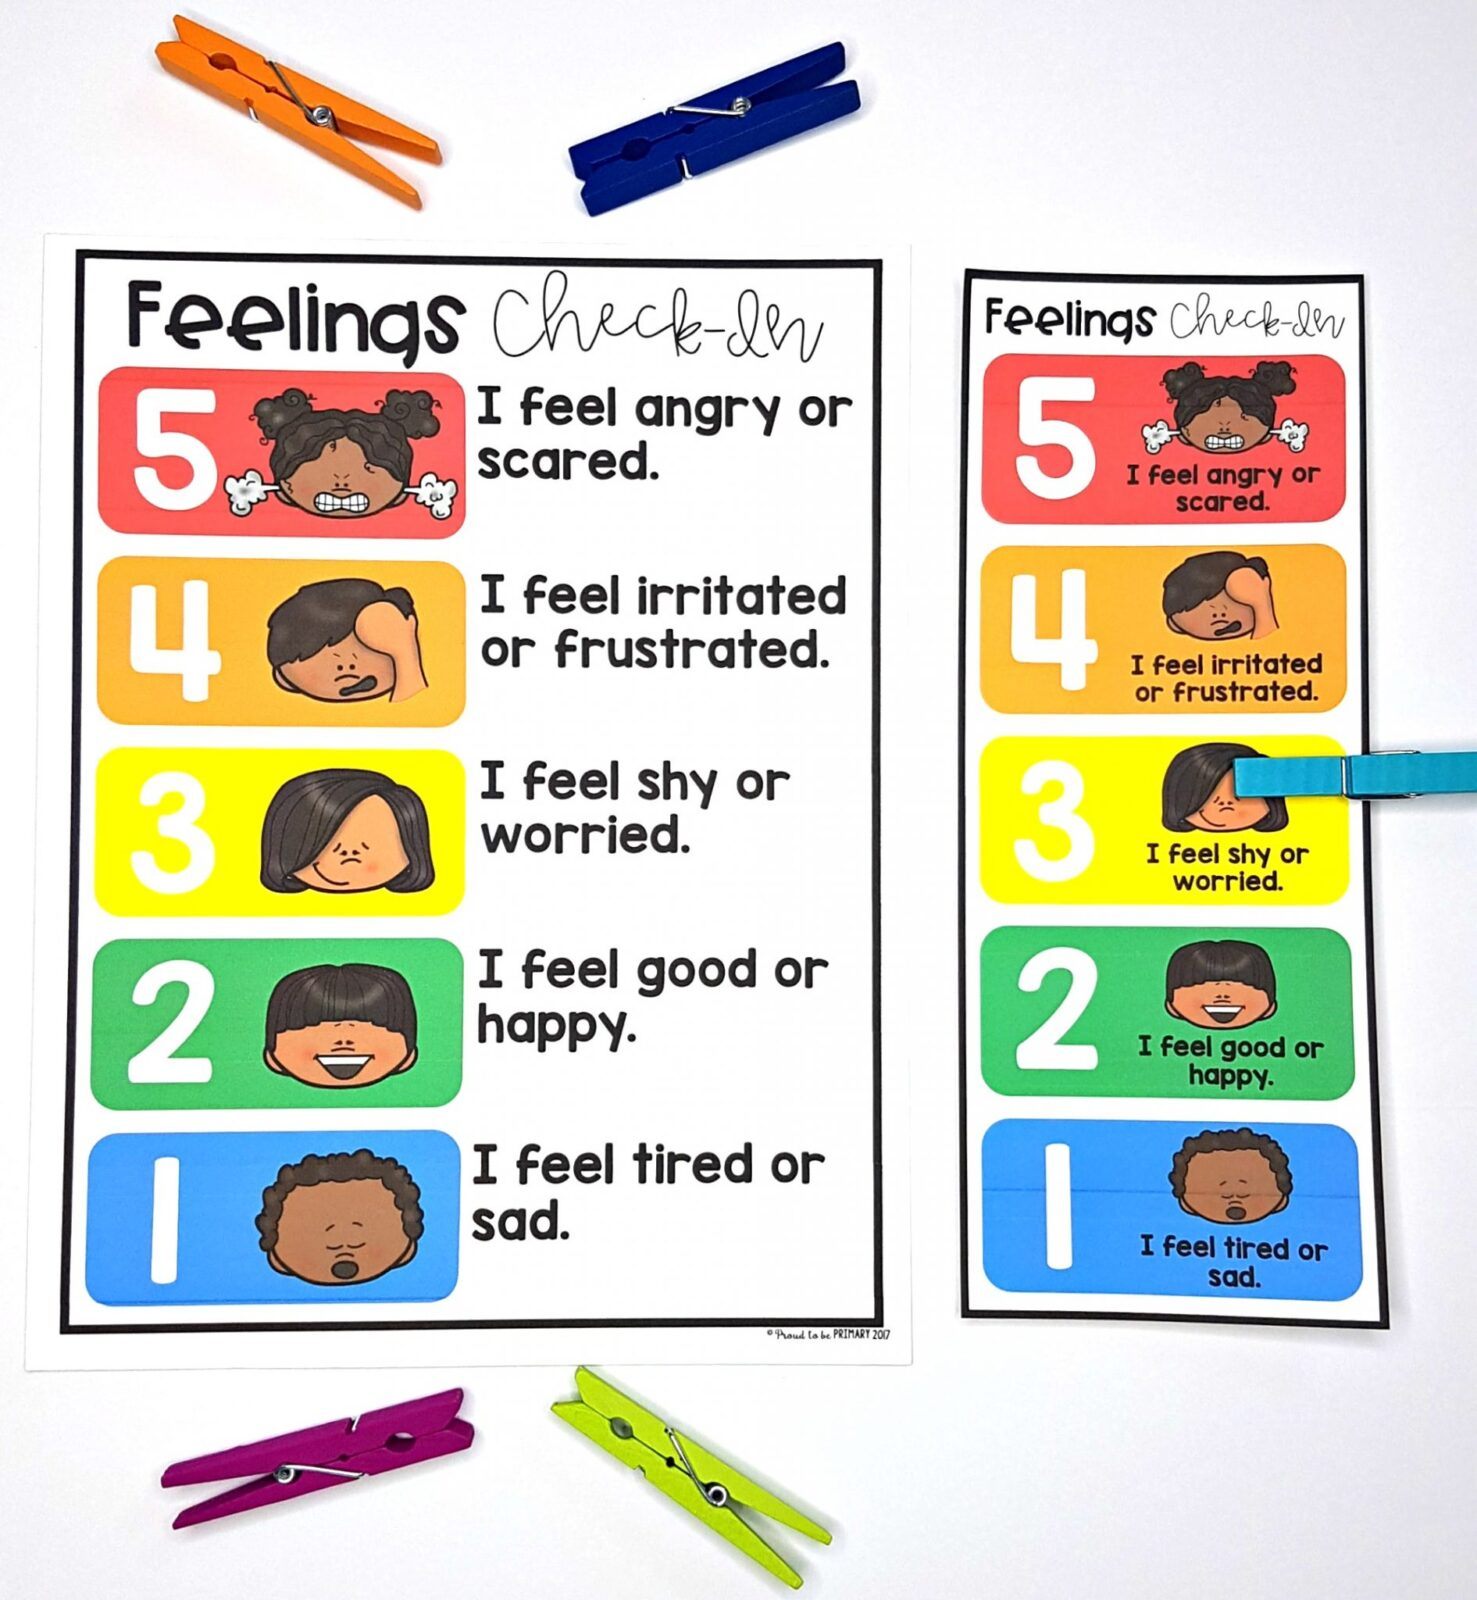 Teachers can use these 15 self-regulation and self-control books and videos for the classroom to teach kids to calm down, self-regulate, and manage their behavior during social-emotional learning lessons and activities with kids along with yoga, breathing exercises, and using a calm down kit. #selfregulationactivities #selfcontrolactivities #socialemotionallearning #charactereducation #booksforkids #selfregulationbooks #calmingstrategies #yogaforkids